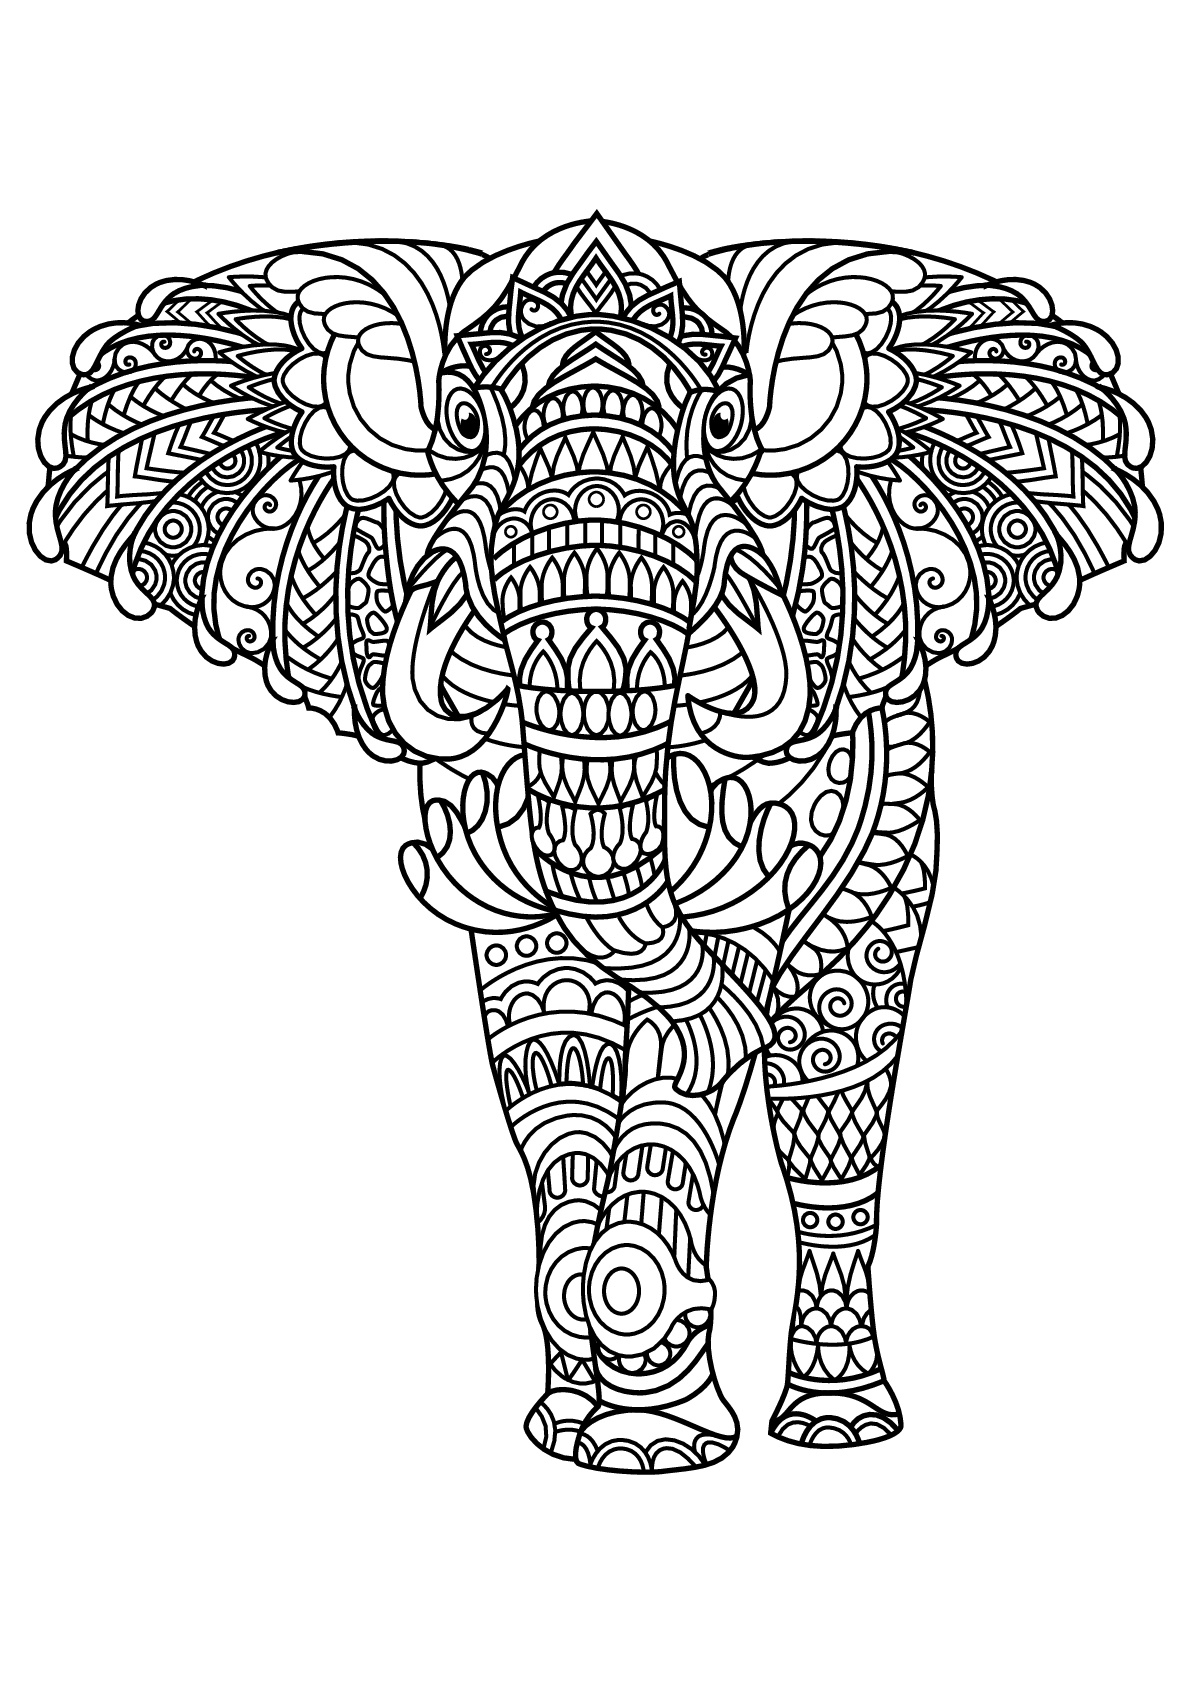 colouring picture of elephant elephants to color for children elephants kids coloring of picture elephant colouring